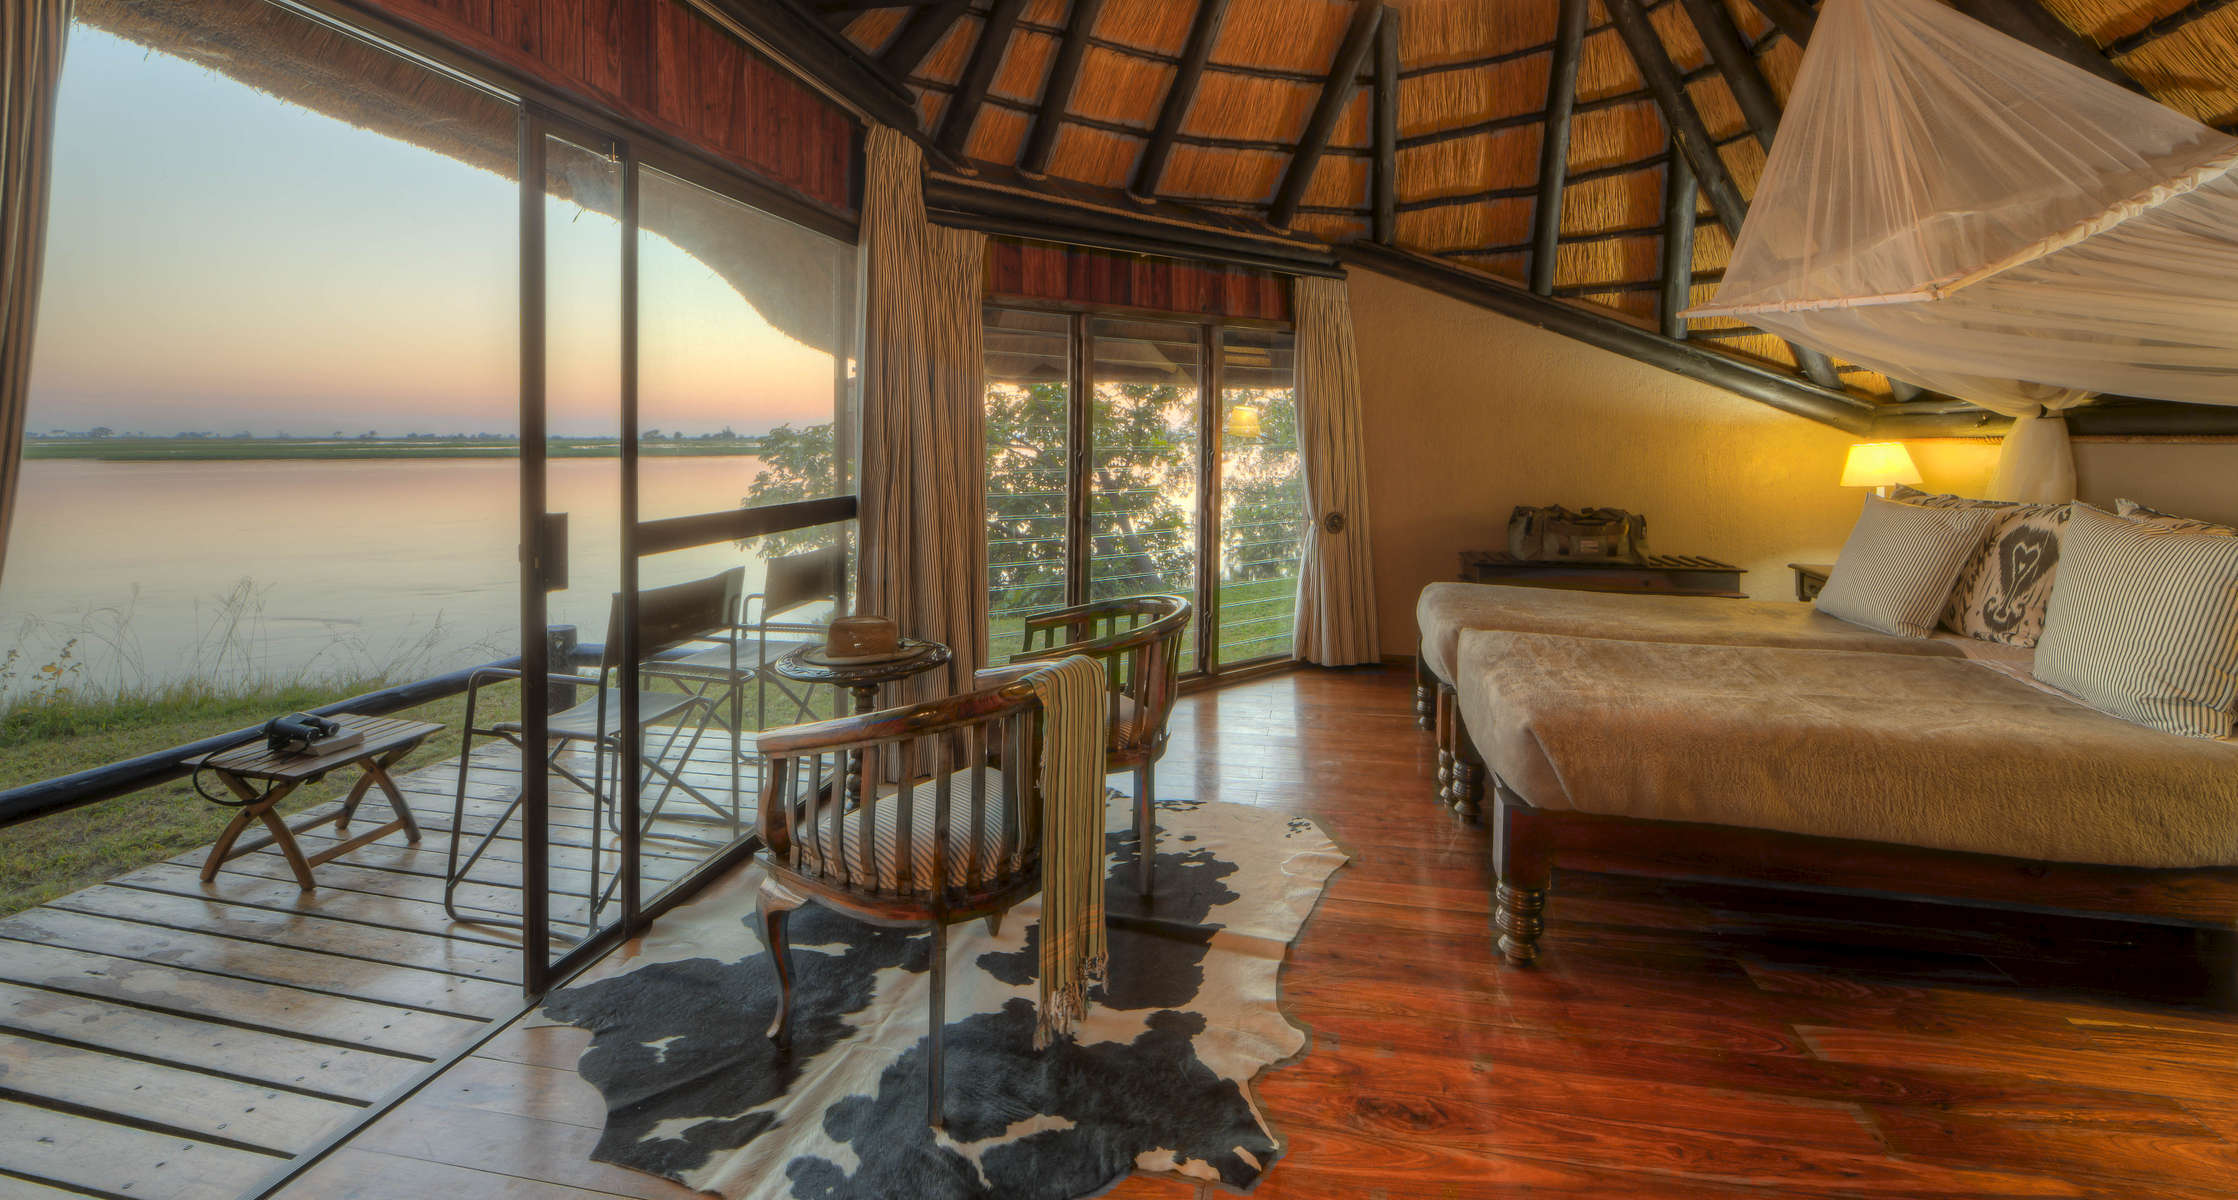 Chobe Savanna Lodge Room